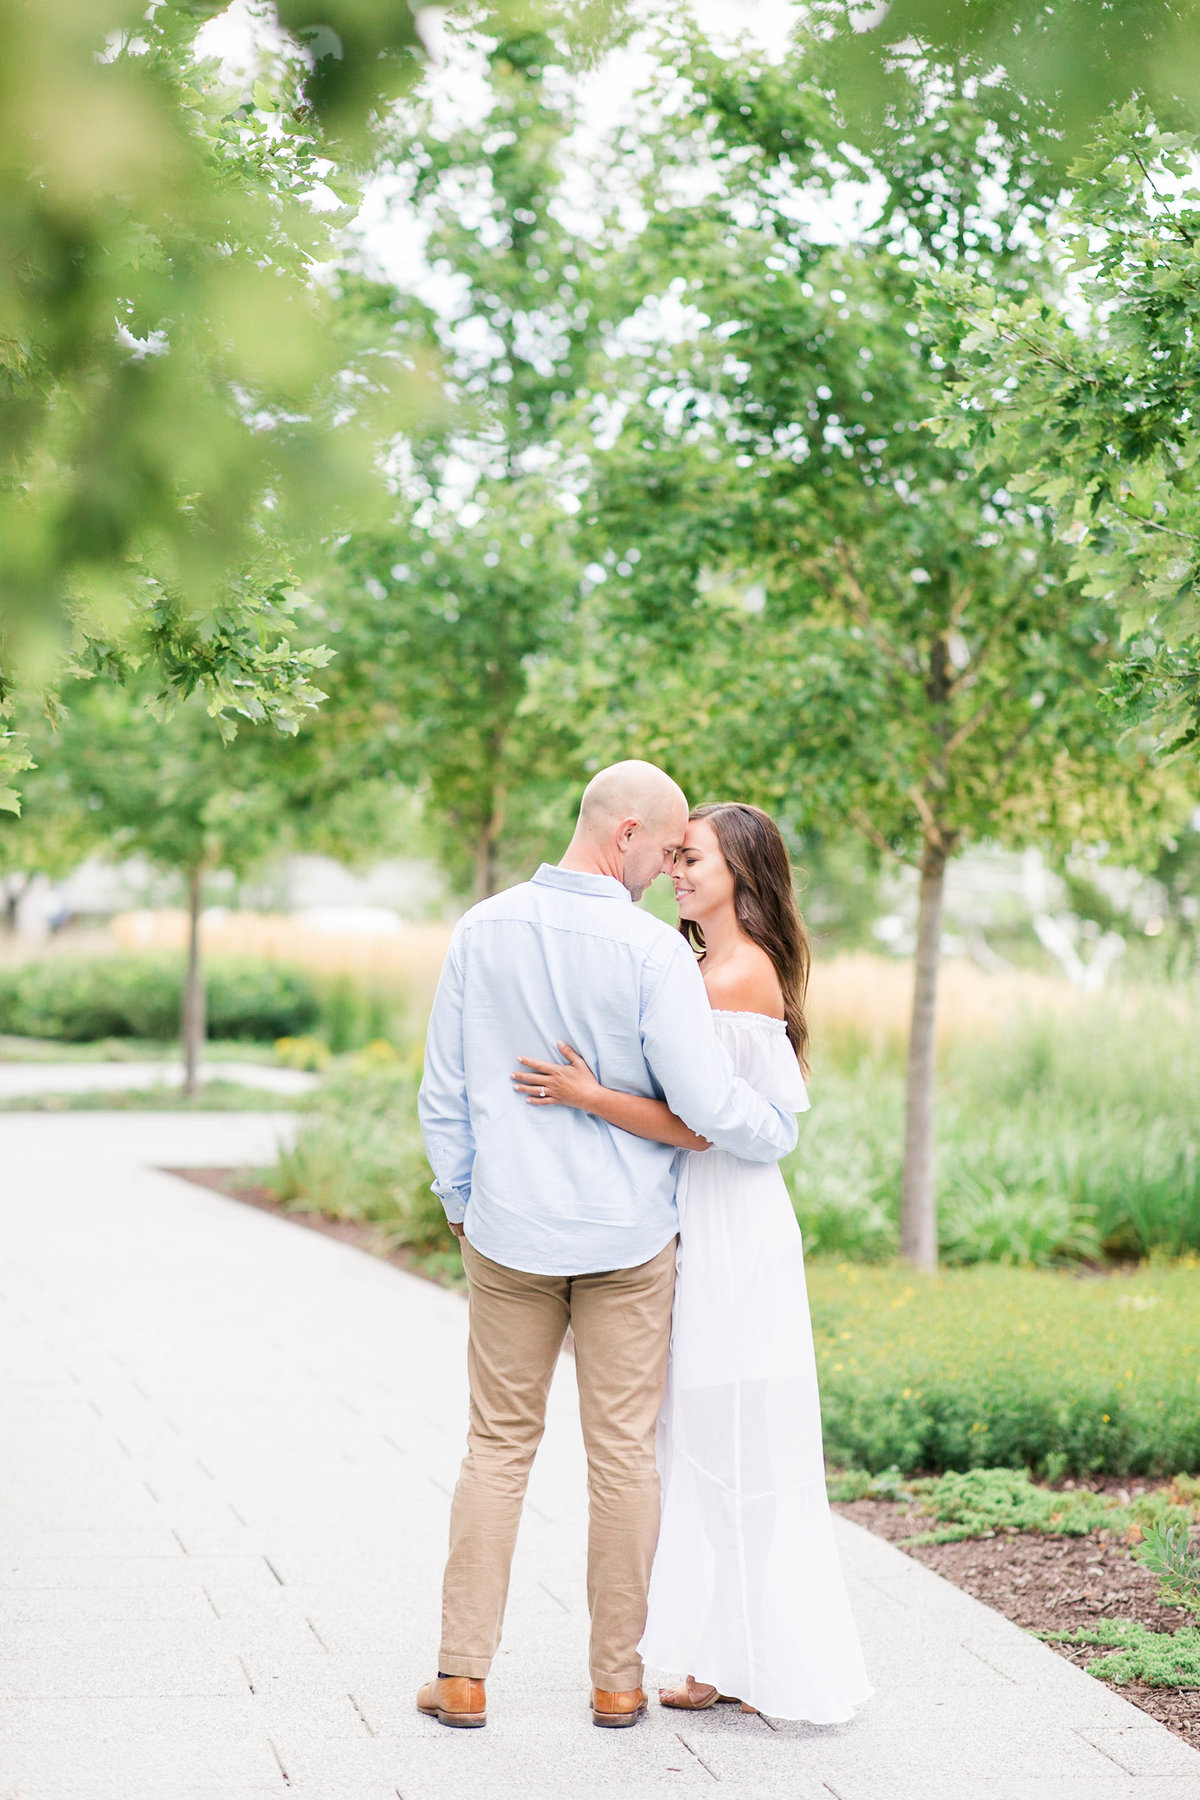 late-summer-milwaukee-engagement-Katie-schubert-wisconsin-wedding-photographer-16